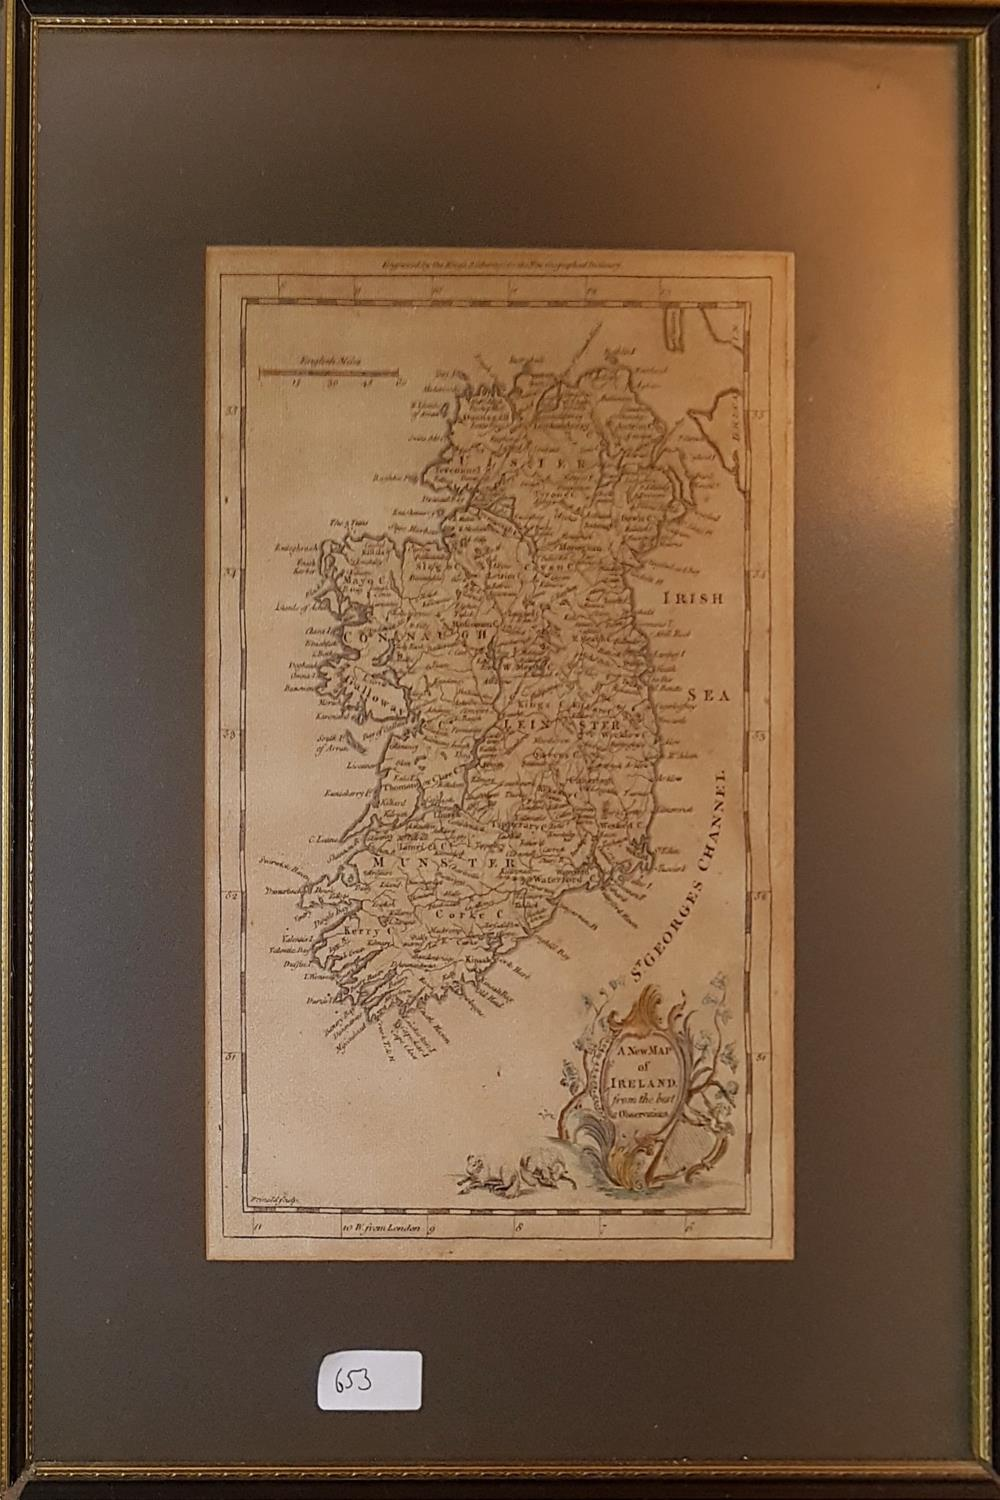 Lot 653 - A 19th Century Map of Ireland along with a 19th Century print of The Four Courts.